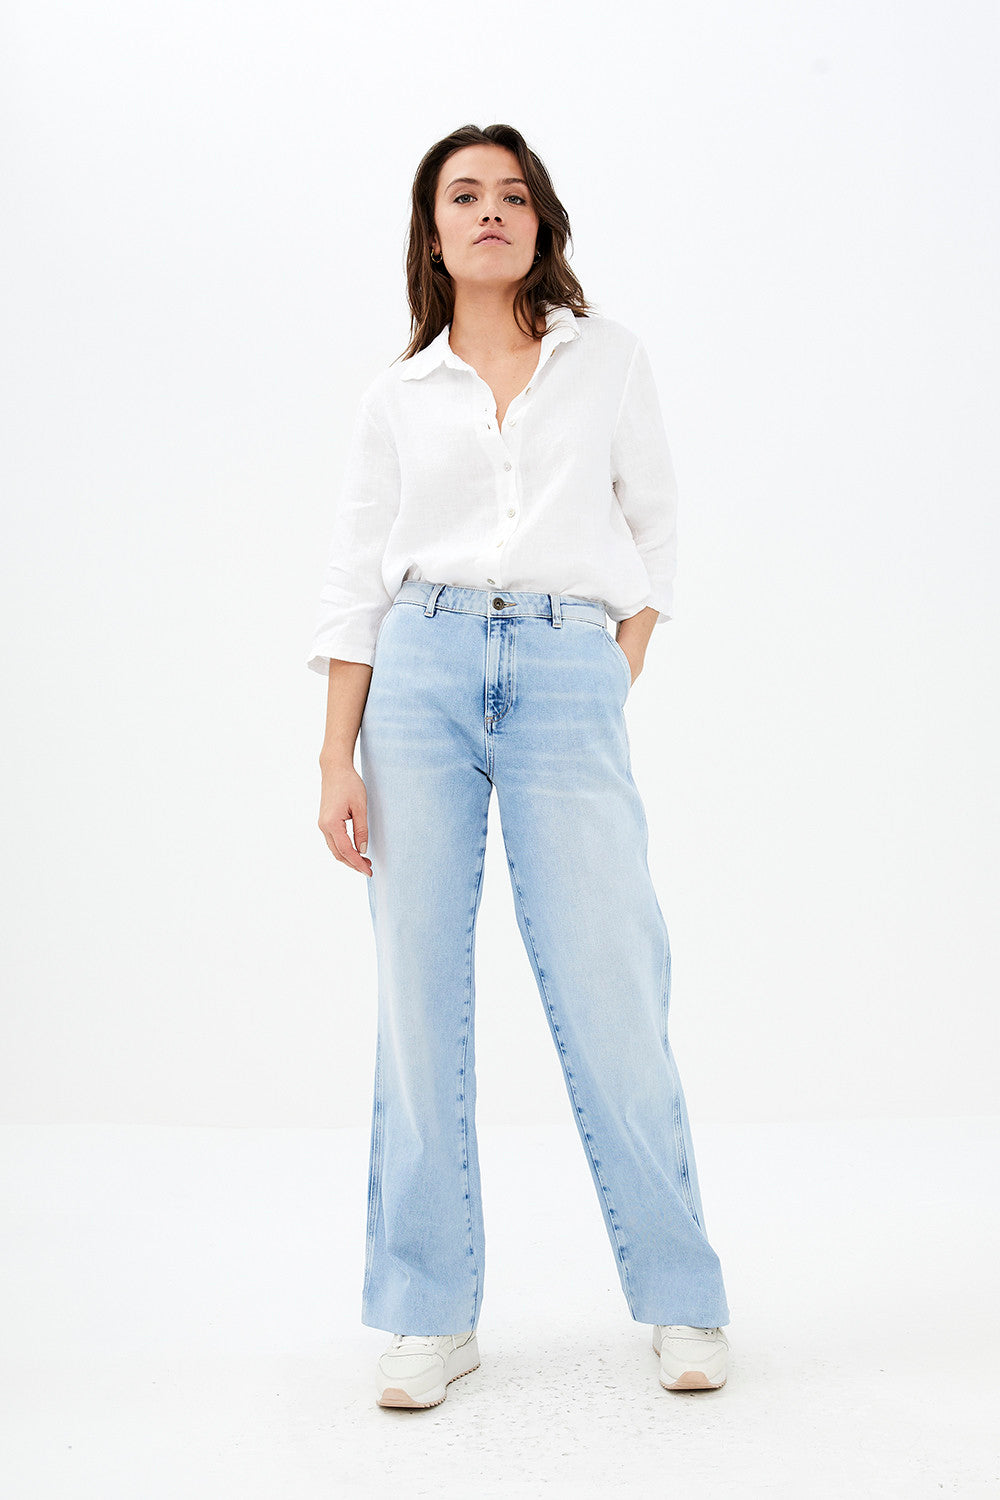 By-Bar - bodil white linen blouse